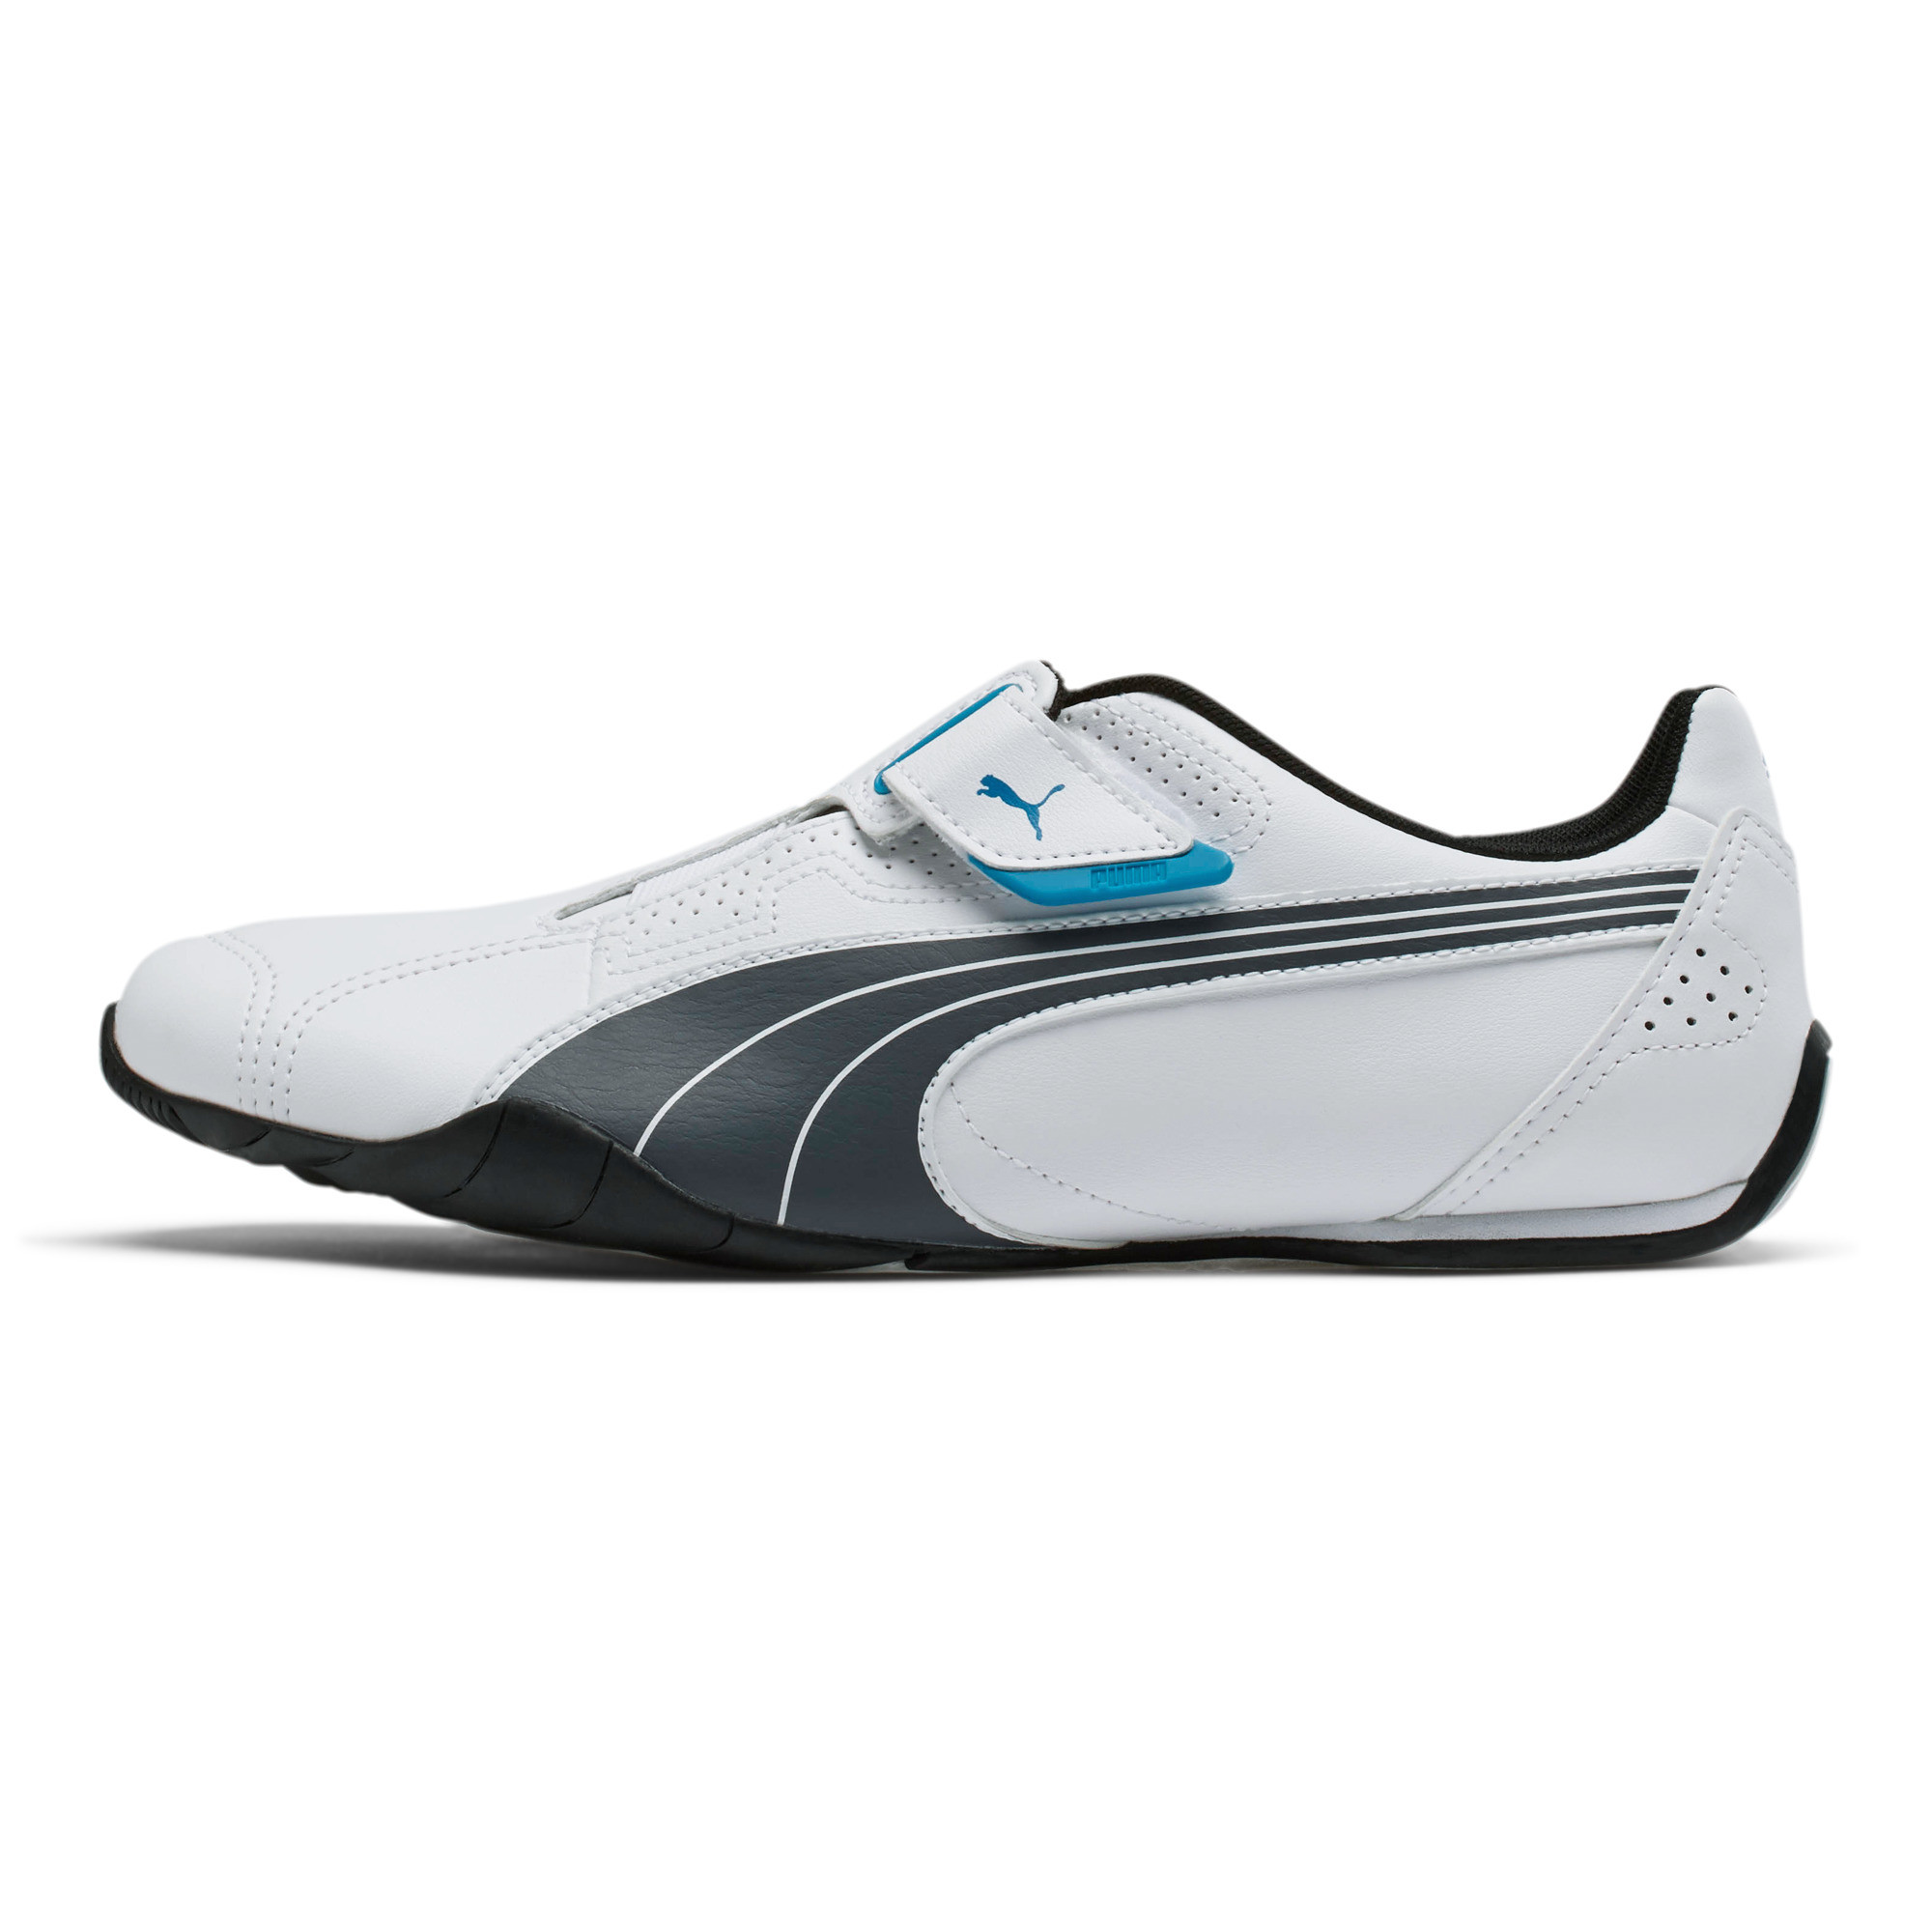 PUMA-Redon-Move-Men-039-s-Shoes-Men-Shoe-Sport-Shoe thumbnail 16